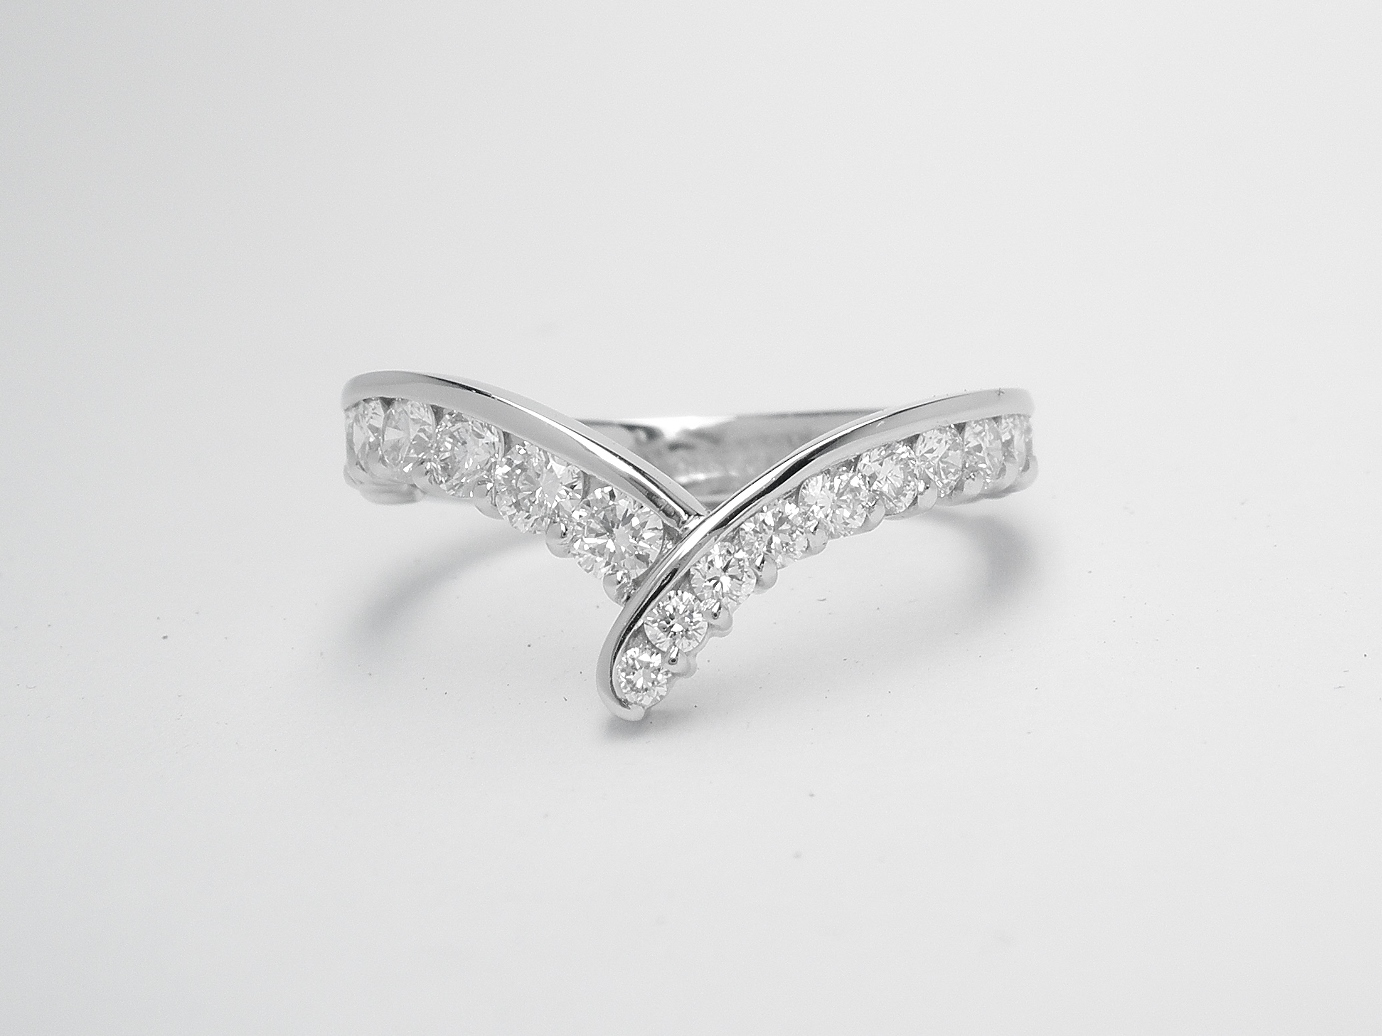 A 19 stone part channel set wishbone cross-over styled ring mounted in platinum. There are 12 tapering diamonds on the right side and 7 of the same size on the left side.